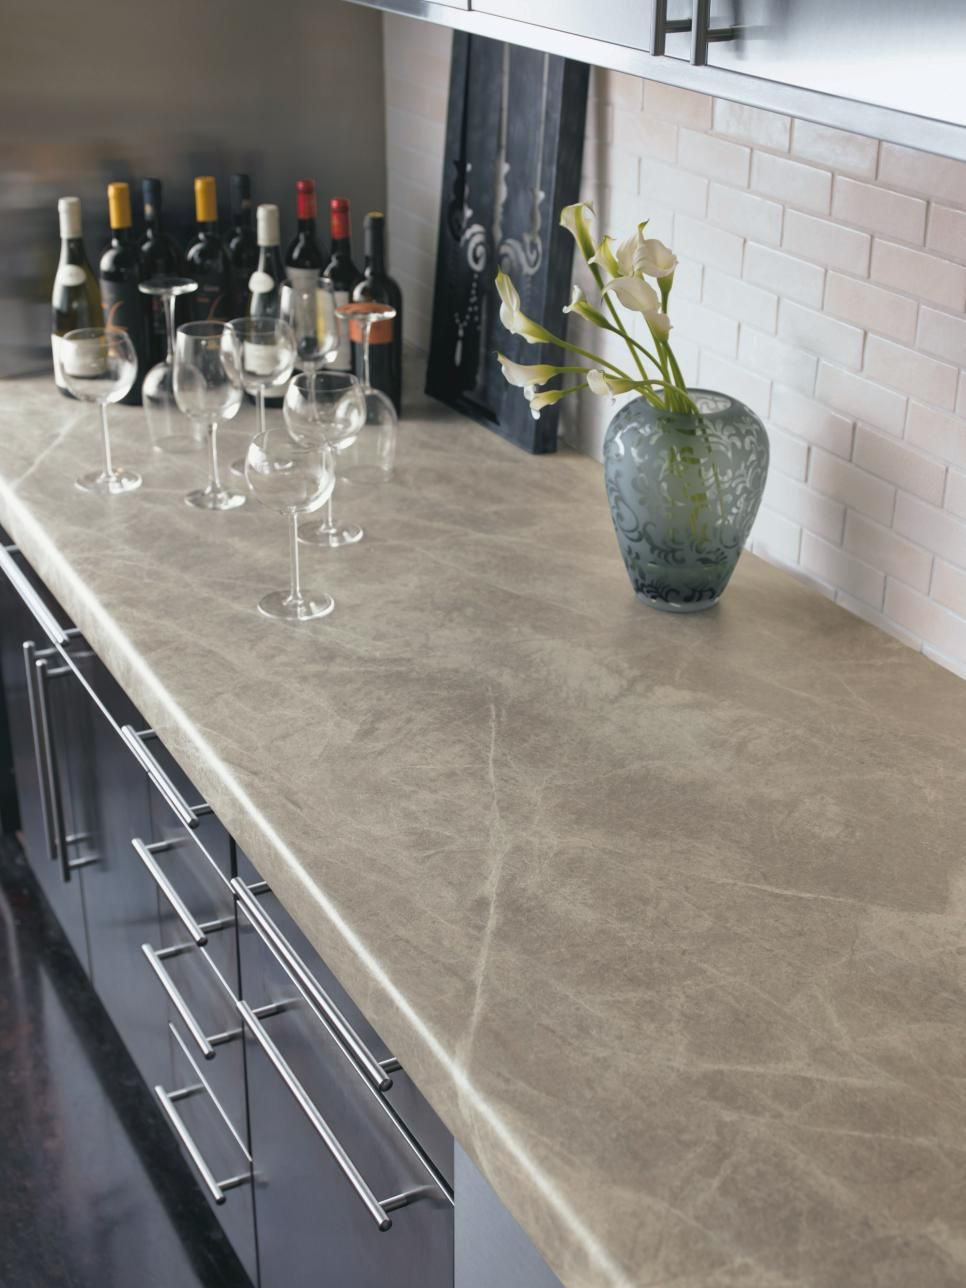 Delightful Laminate Countertops Are An Inexpensive, Low Maintenance Alternative To  Pricey Stone And Solid